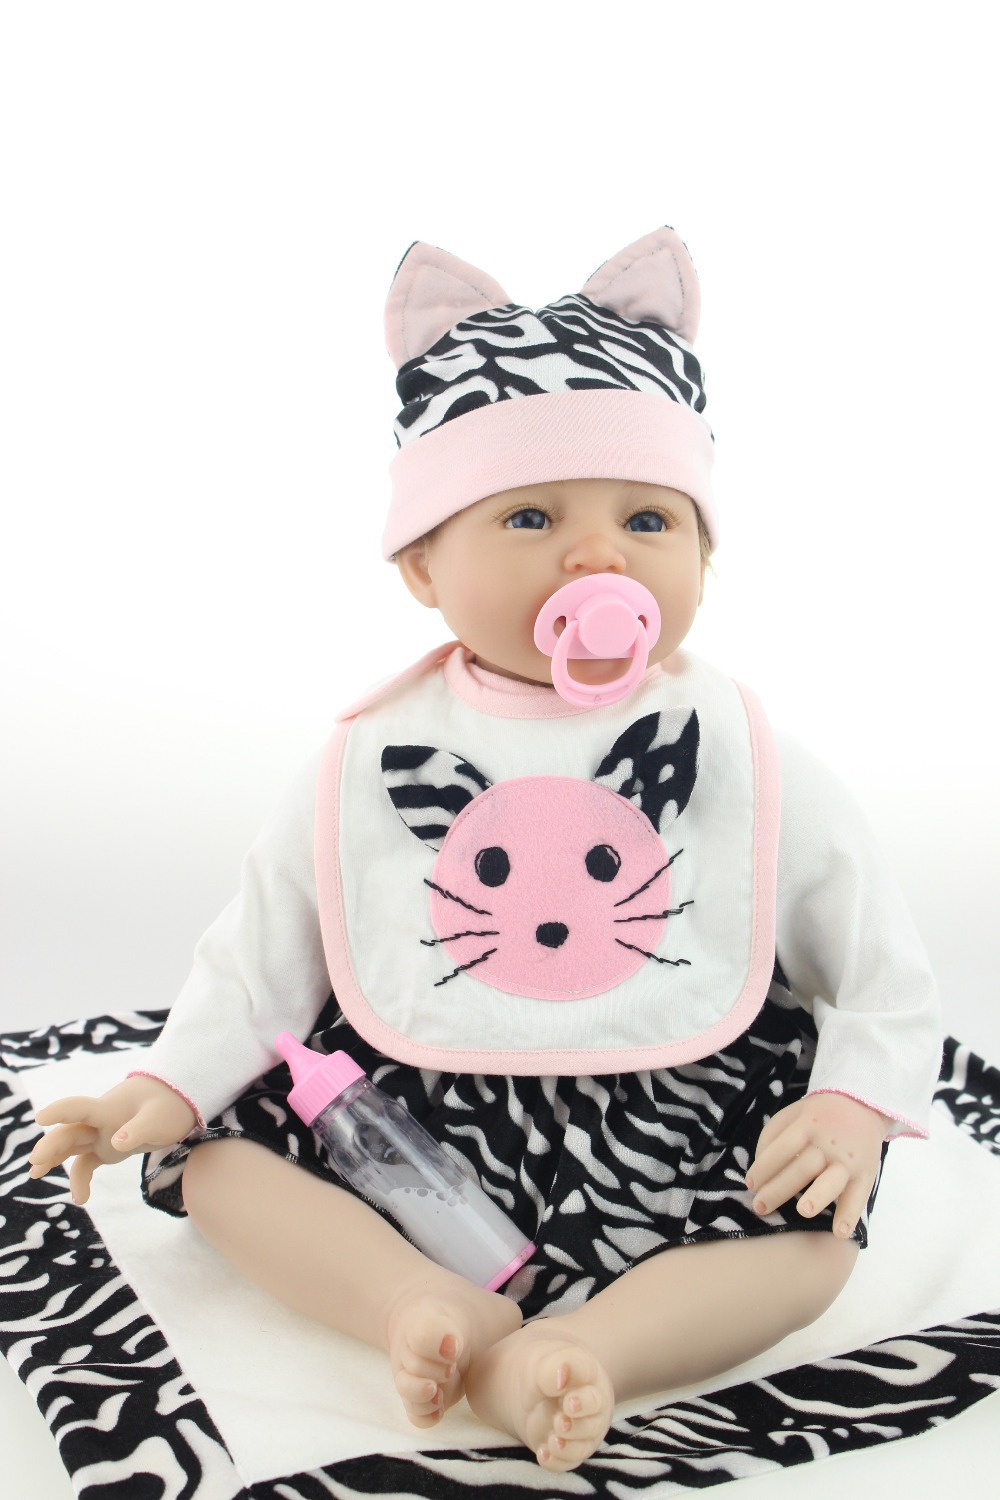 2015 NEW hot sale lifelike reborn baby doll  very soft silicone vinyl fashion doll Christmas gift old gift2015 NEW hot sale lifelike reborn baby doll  very soft silicone vinyl fashion doll Christmas gift old gift